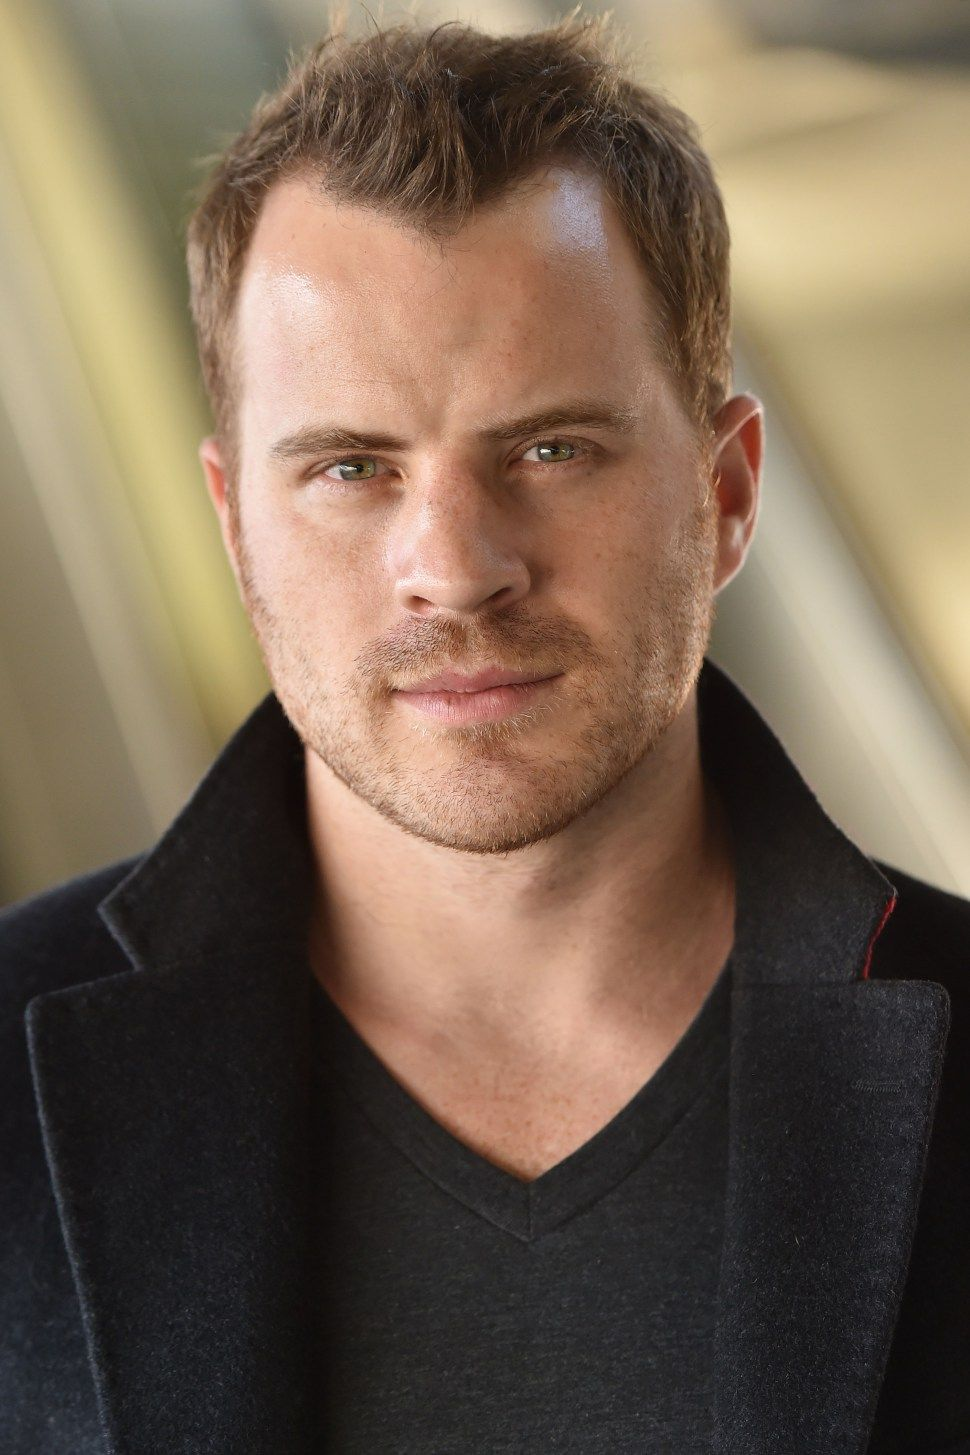 The 34-year old son of father  Paul Appleby and mother Phyllis Appleby, 183 cm tall Robert Kazinsky in 2017 photo